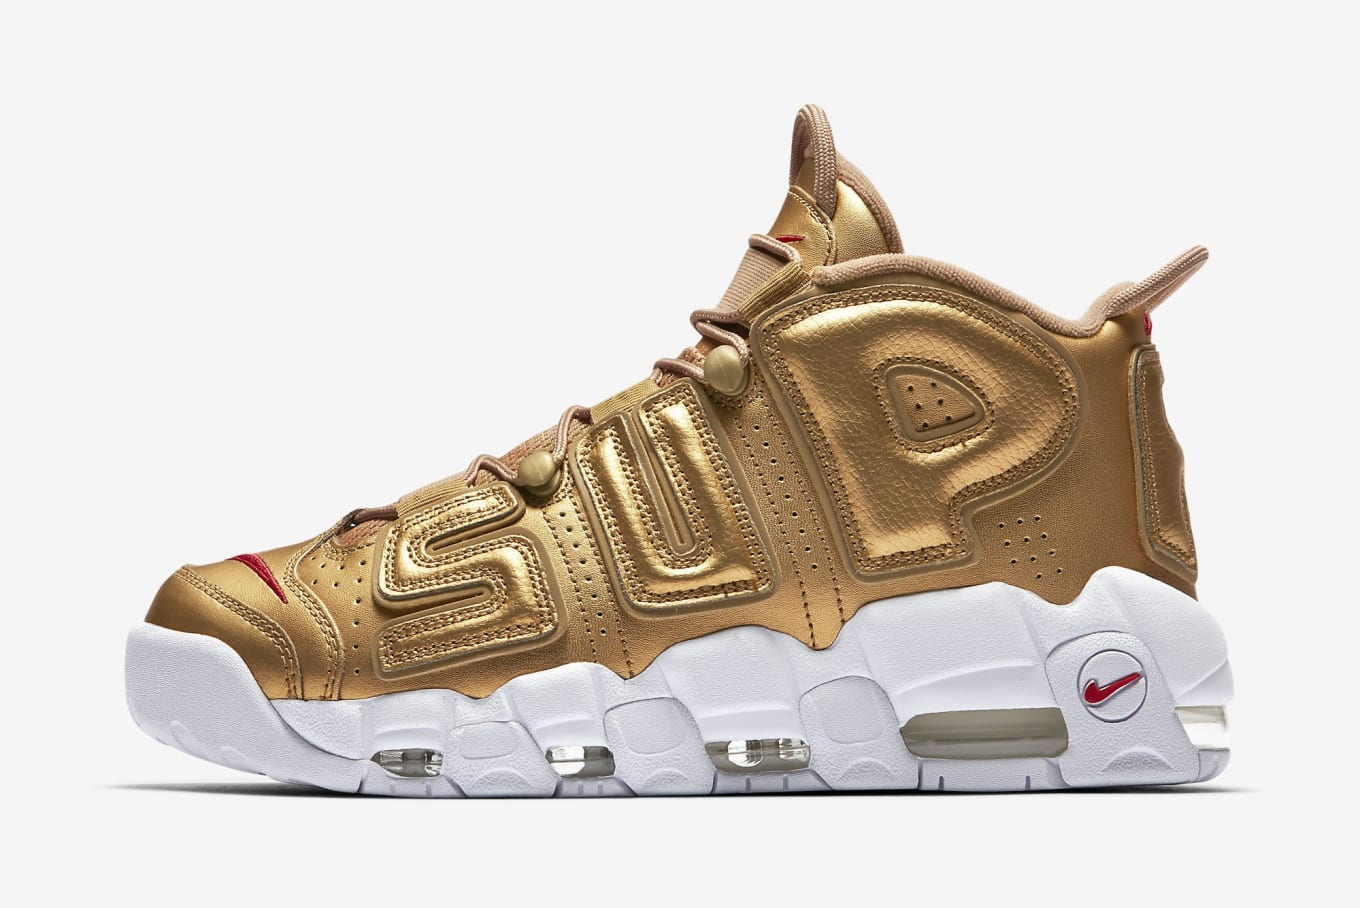 a78f2f5241f744 Supreme x Nike Air More Uptempo